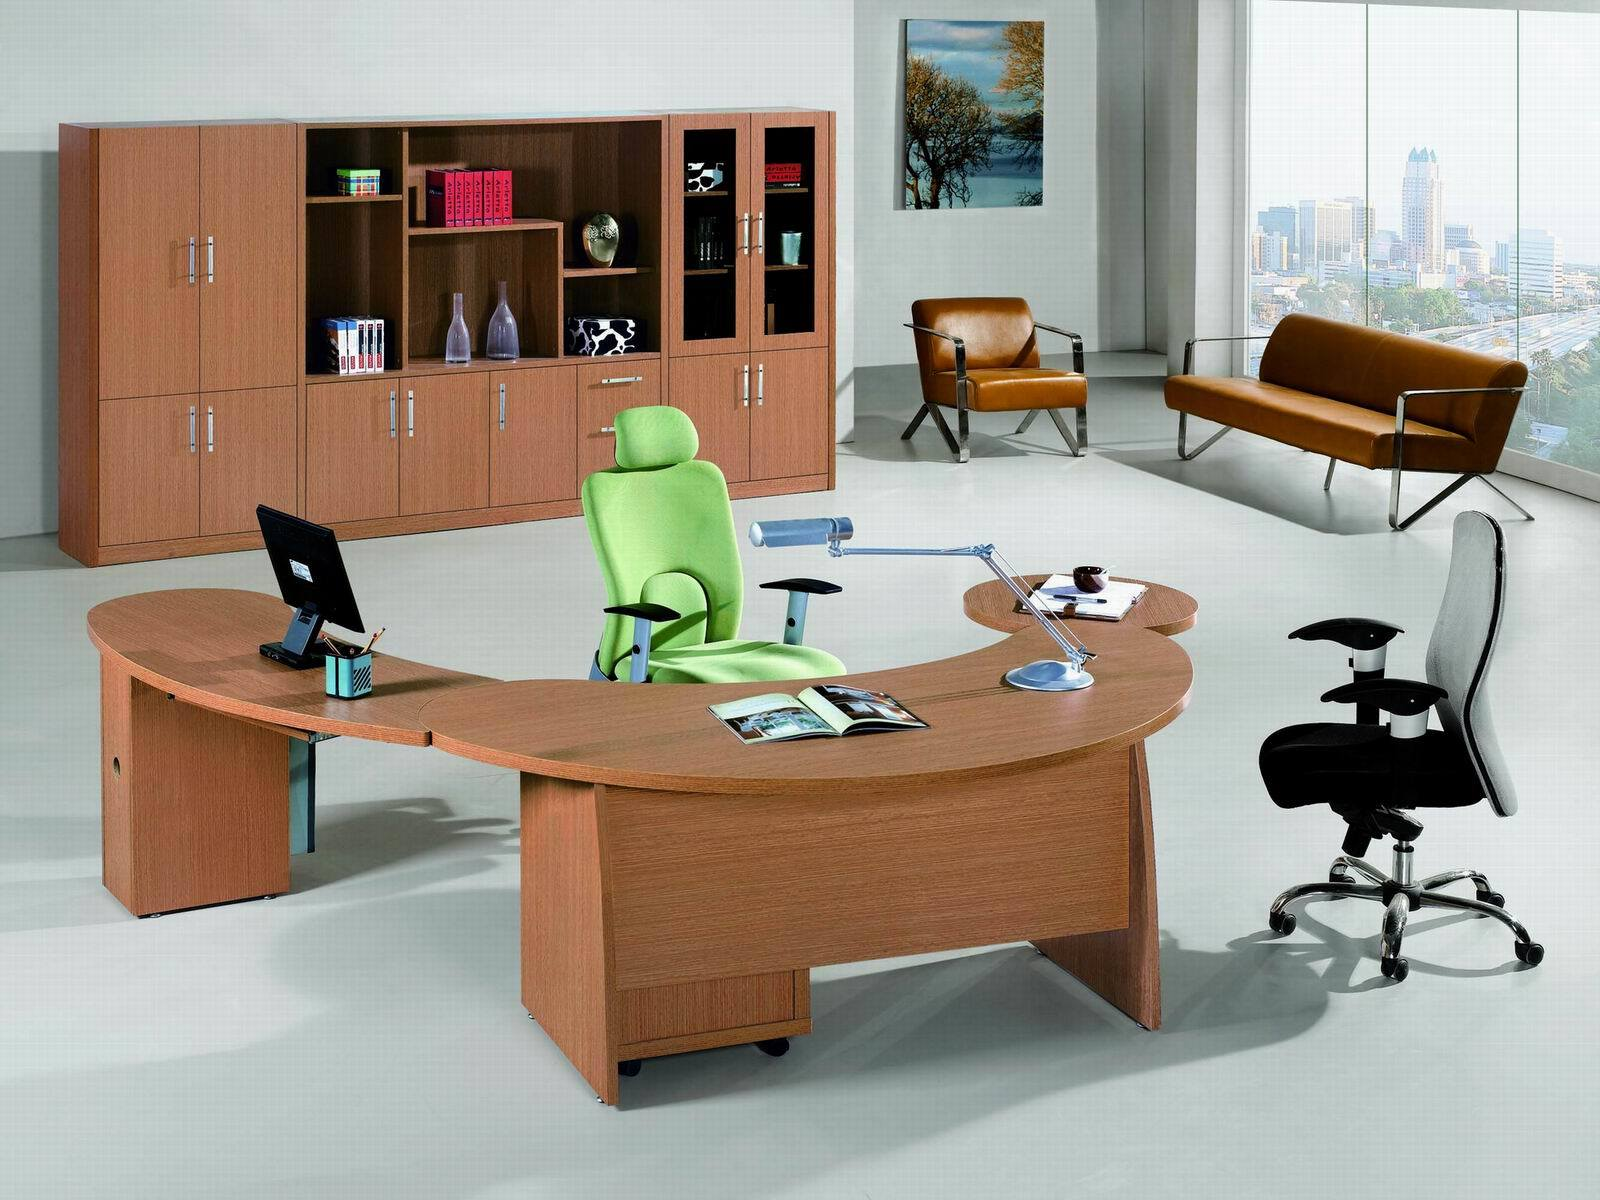 Table For Office : ... Modern Office Table (25-1) - China modern office table, office table